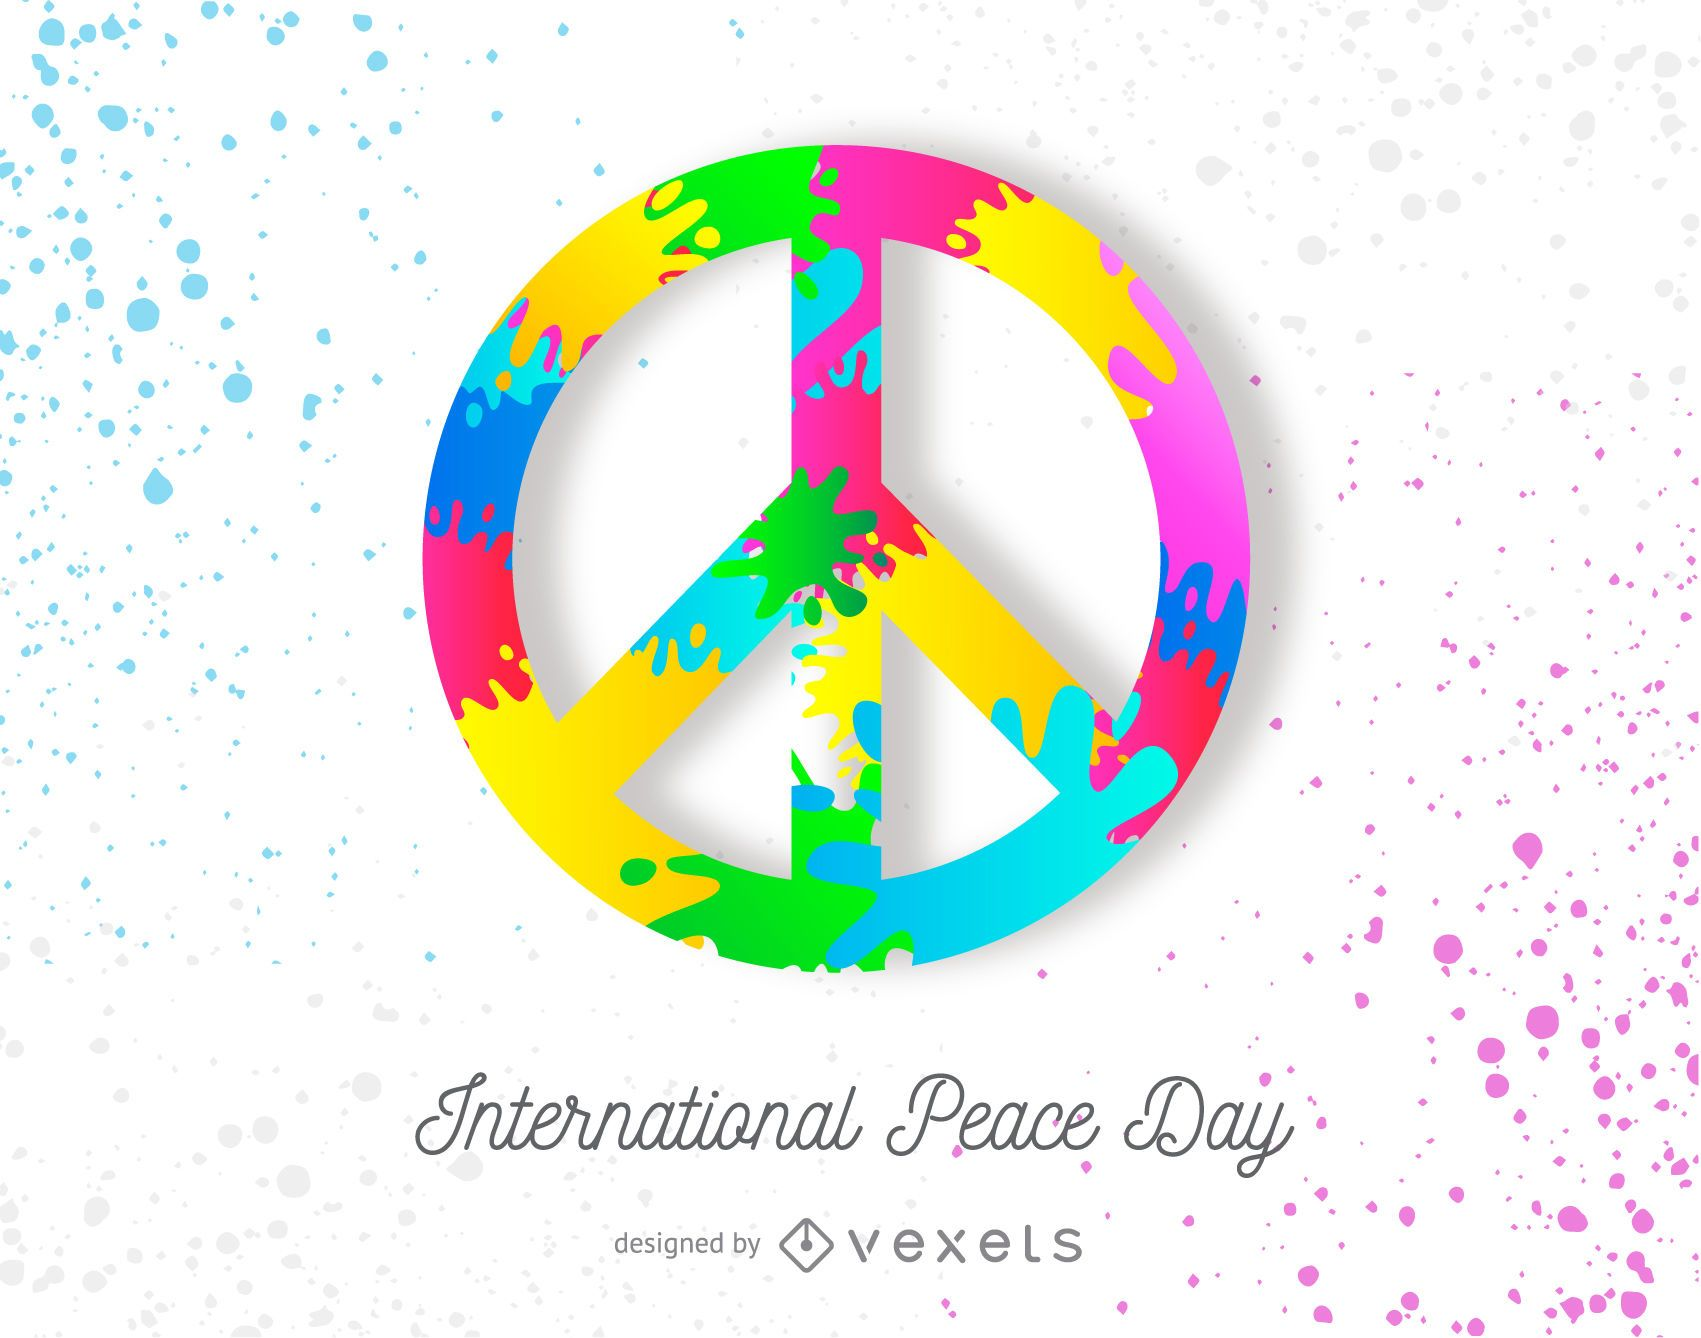 White dove laurel peace symbol vector download colorful peace day poster design biocorpaavc